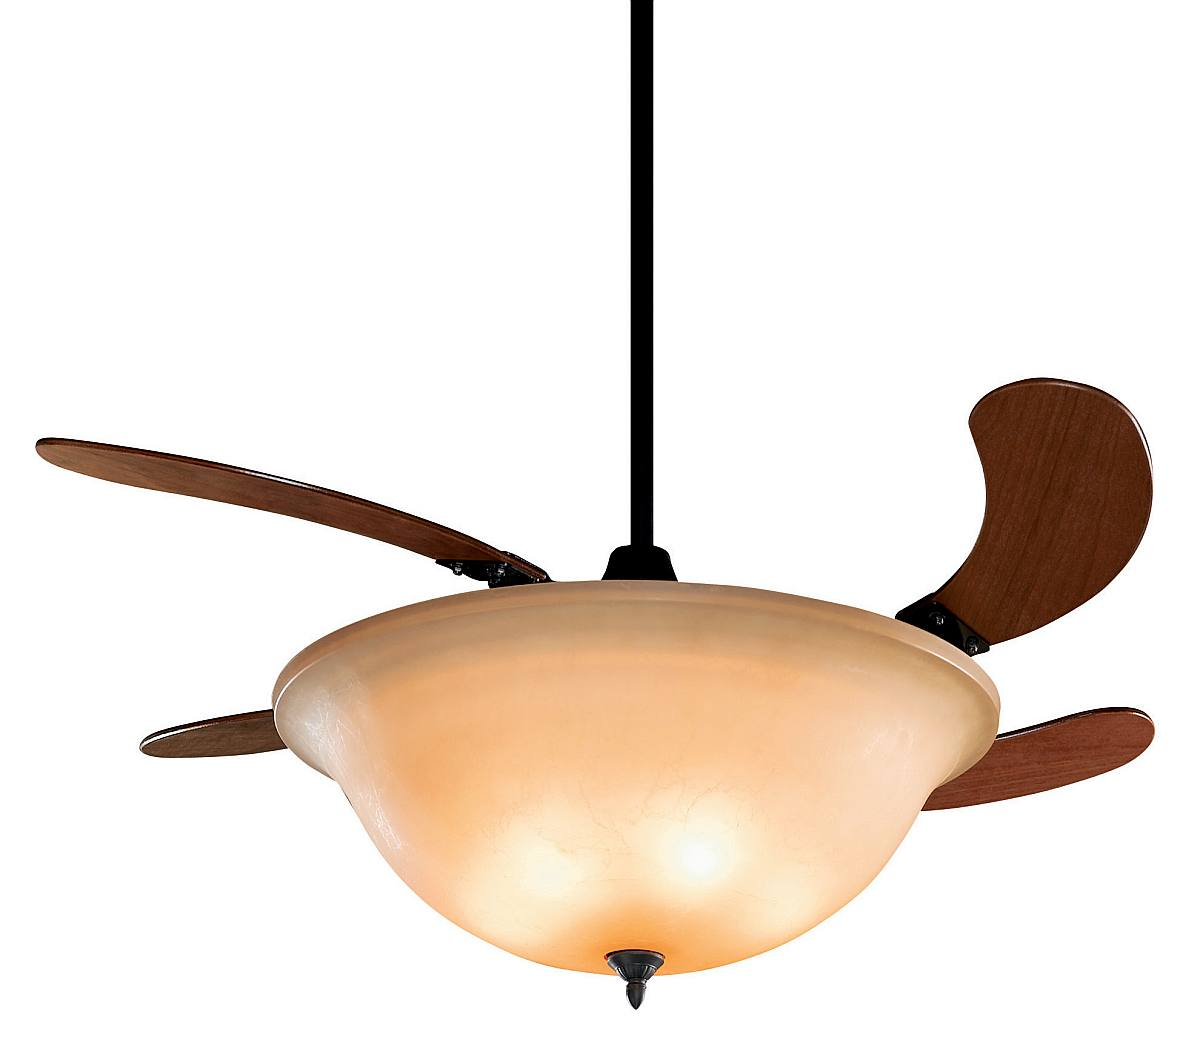 Innovative Ceiling Fan Ideas: Retractable Blade Ceiling Fans Design : Fanimation Air Shadow Parrot Model 810AM Is An Awesome Retractable Blade Ceiling Fan